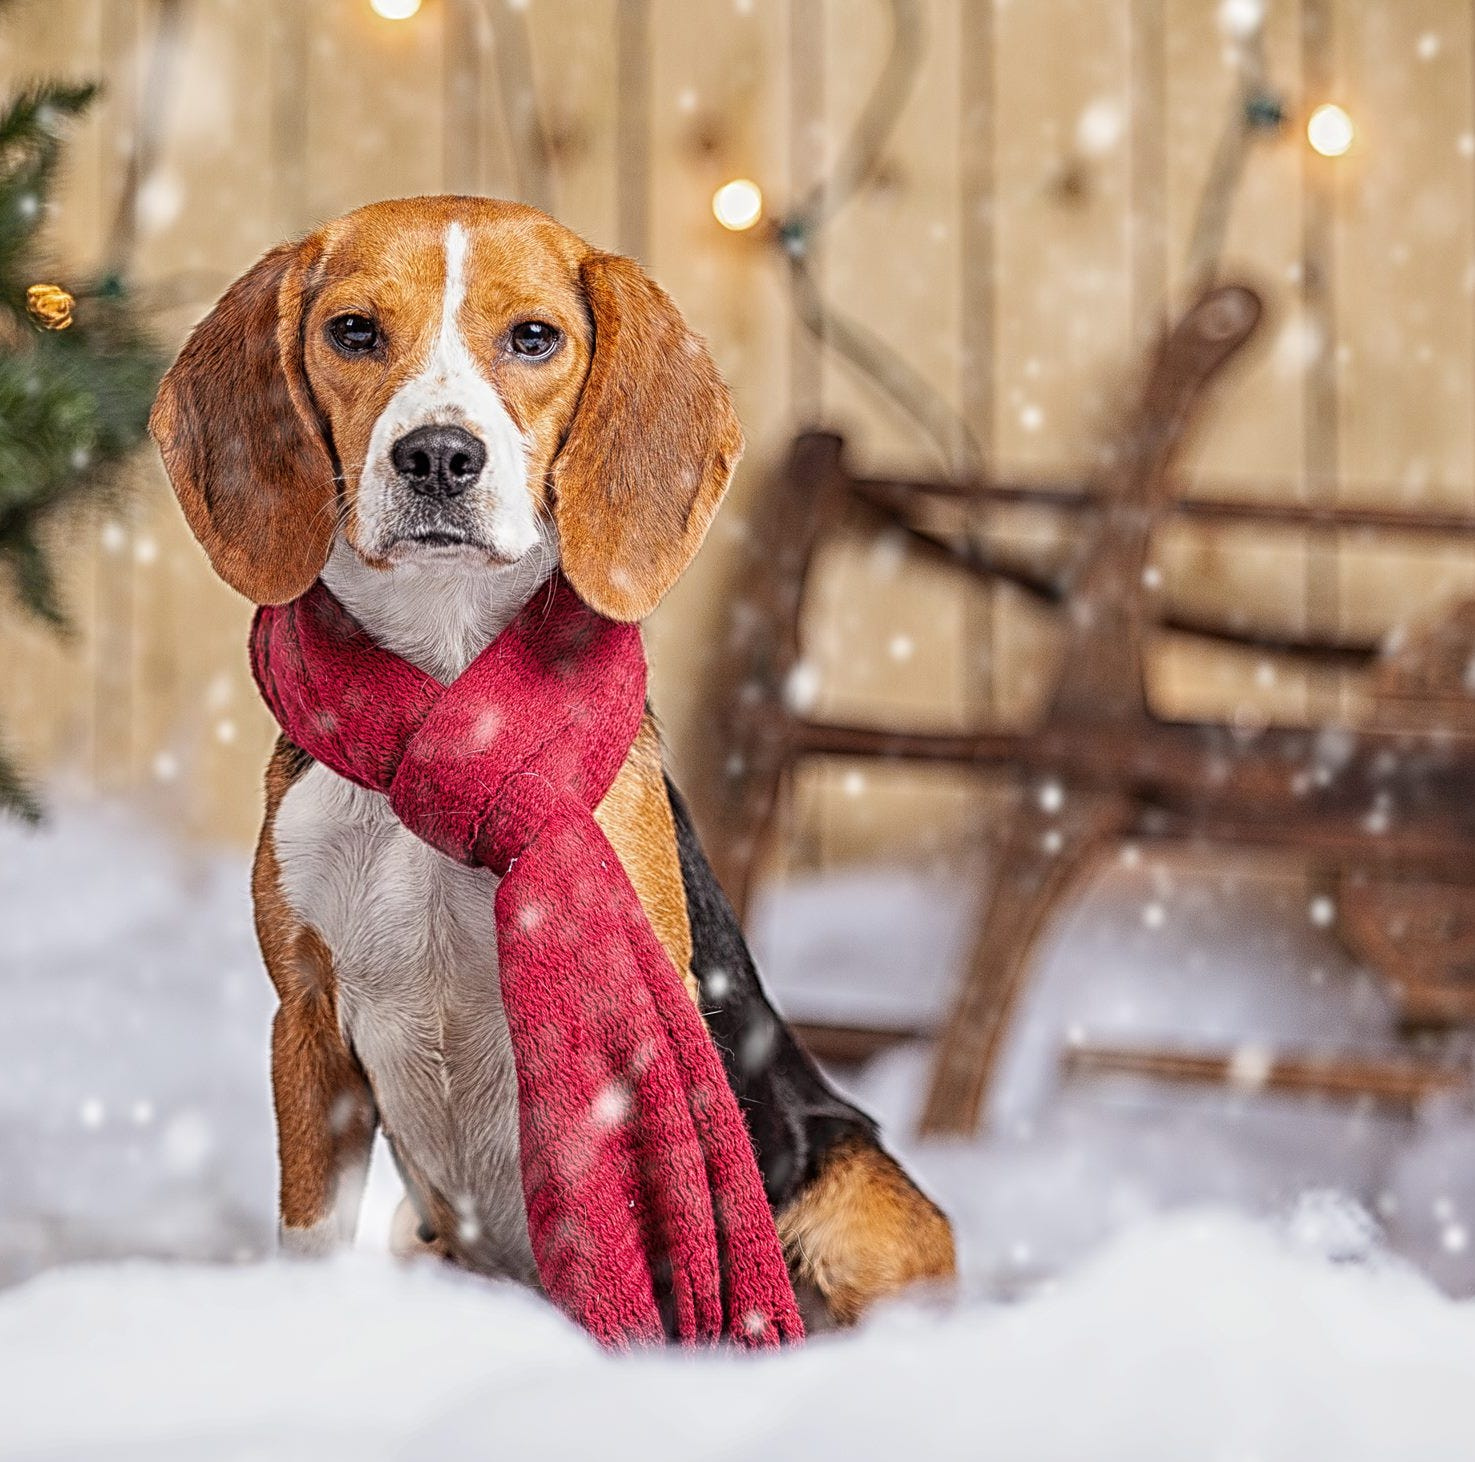 Bagel the beagle up for adoption soon